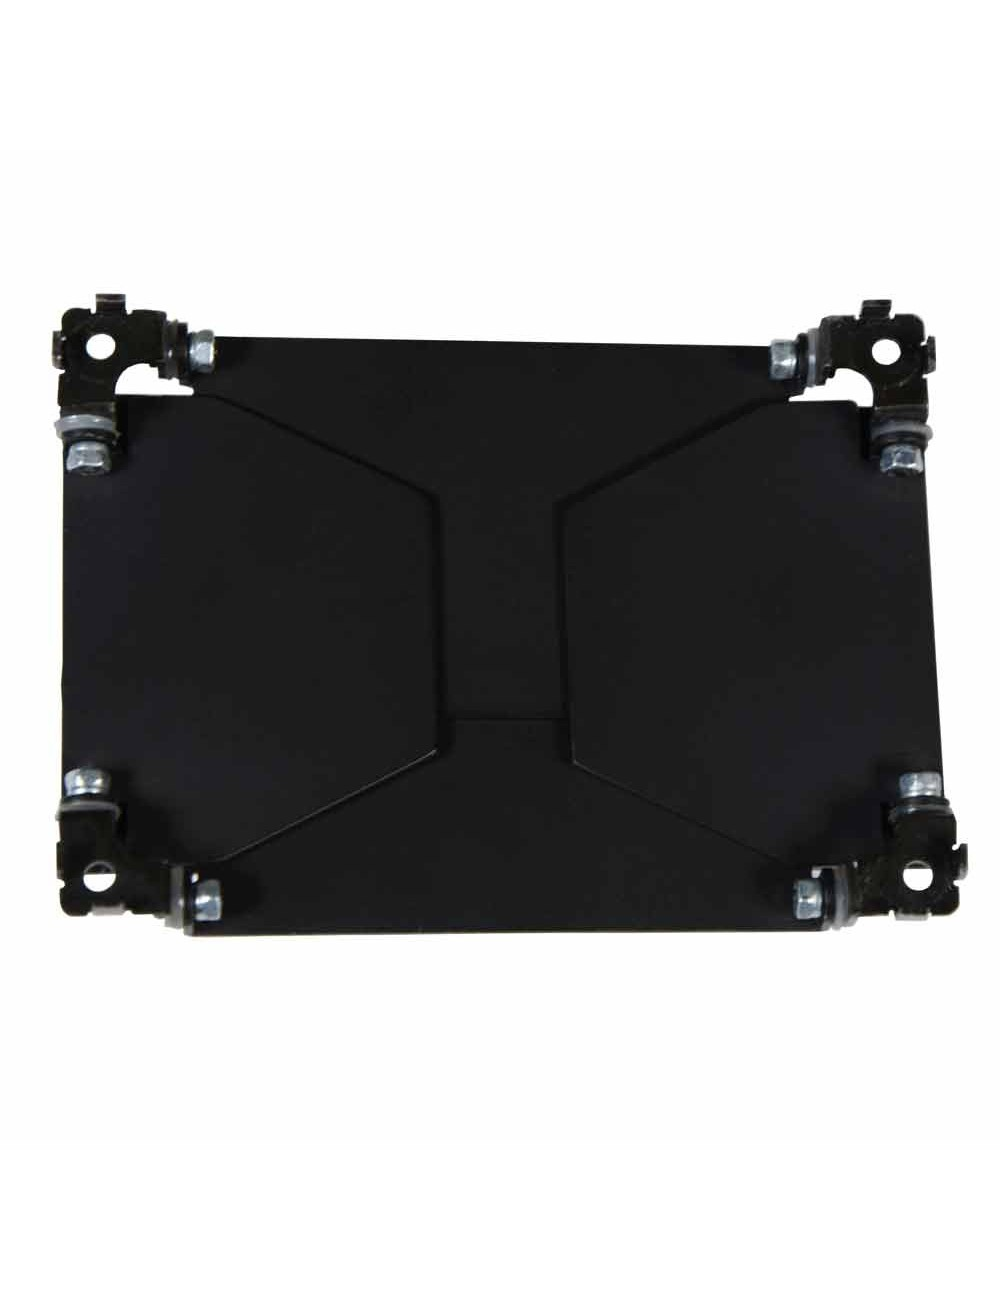 Magnetic barndoors with diffuser for on-camera light